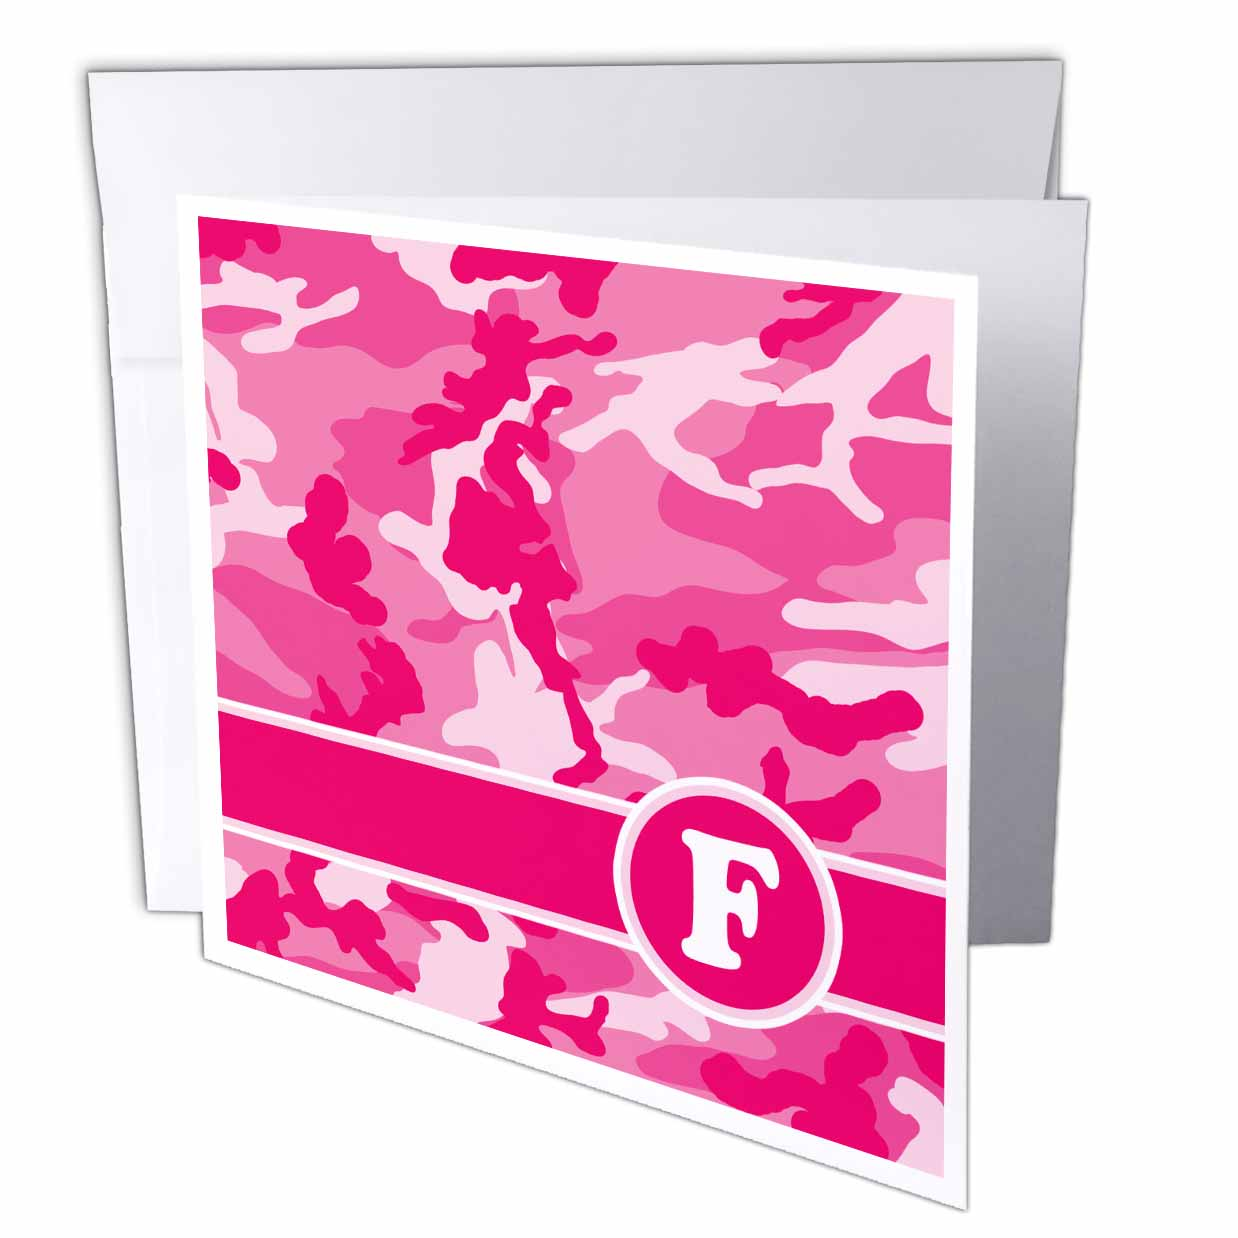 3dRose Cute Pink Camo Camouflage Letter F, Greeting Cards, 6 x 6 inches, set of 12